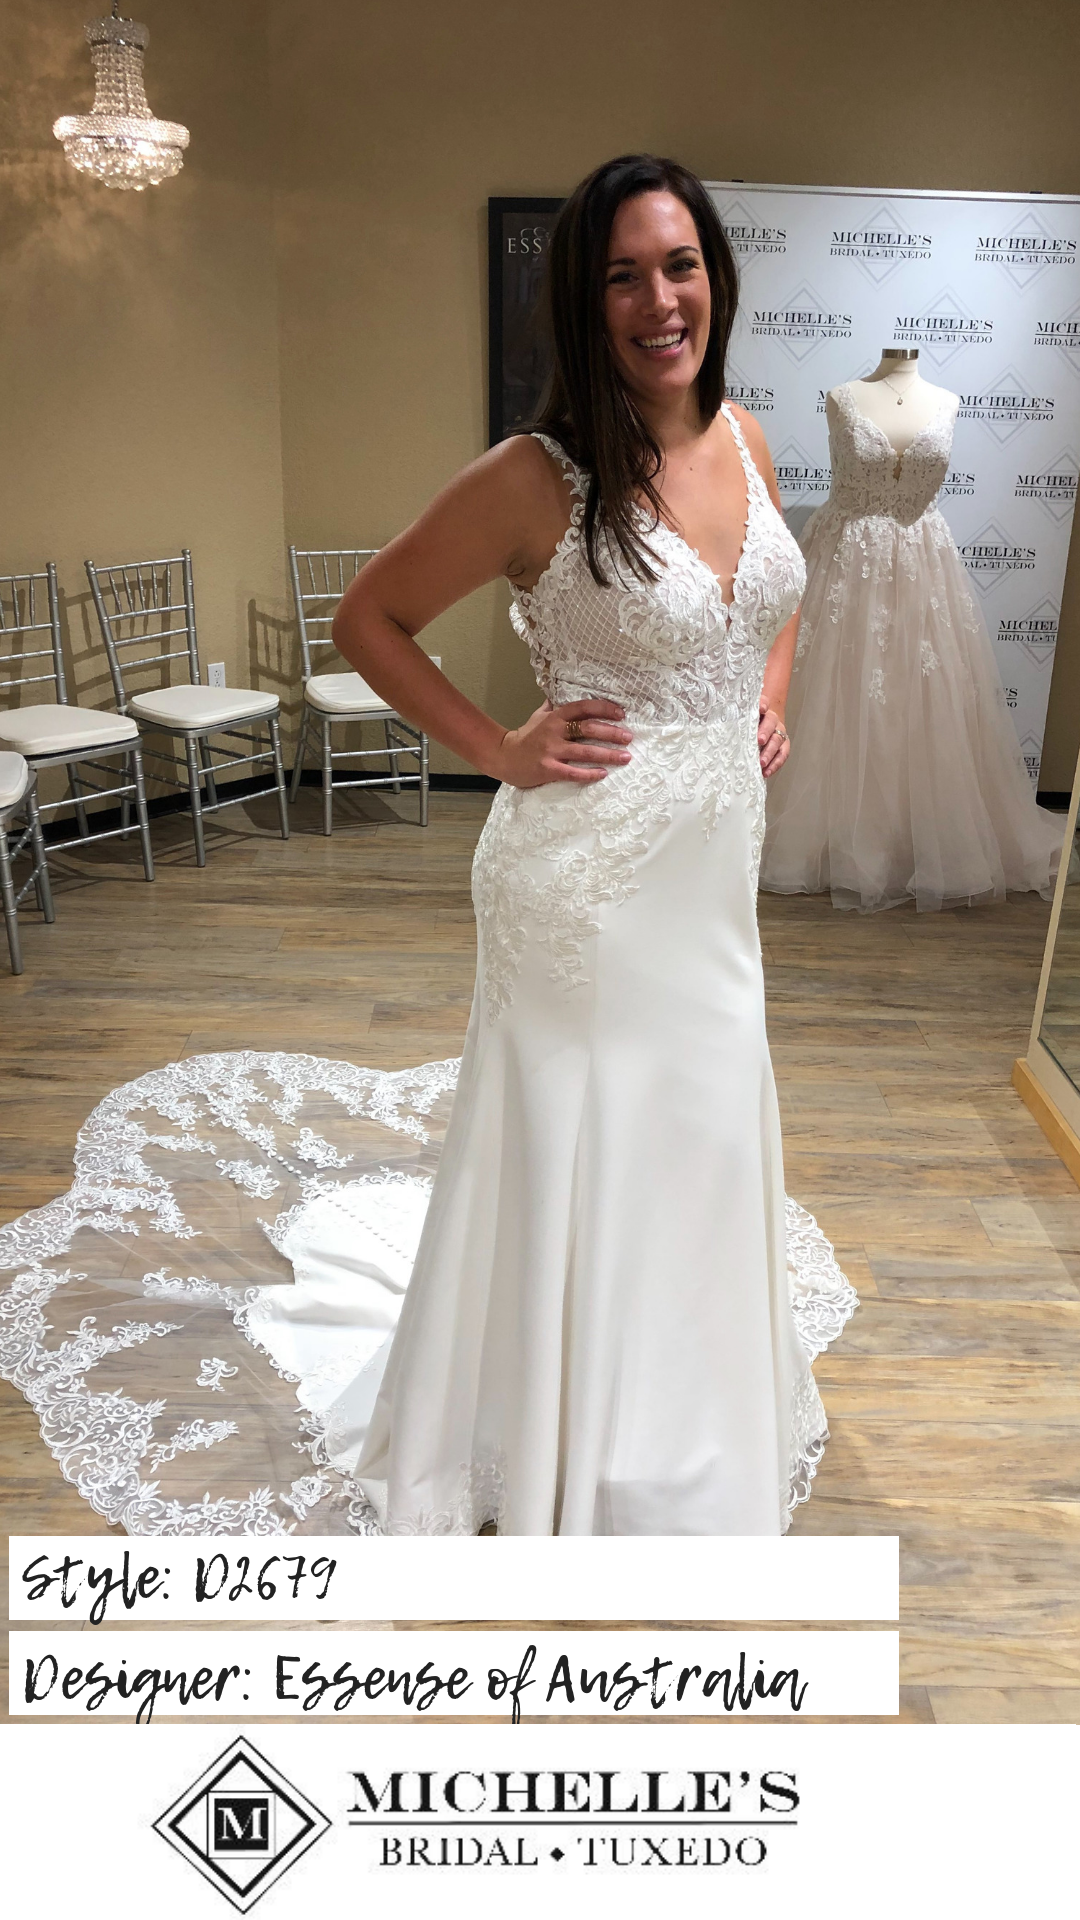 ee38e866dd4 A statement gown